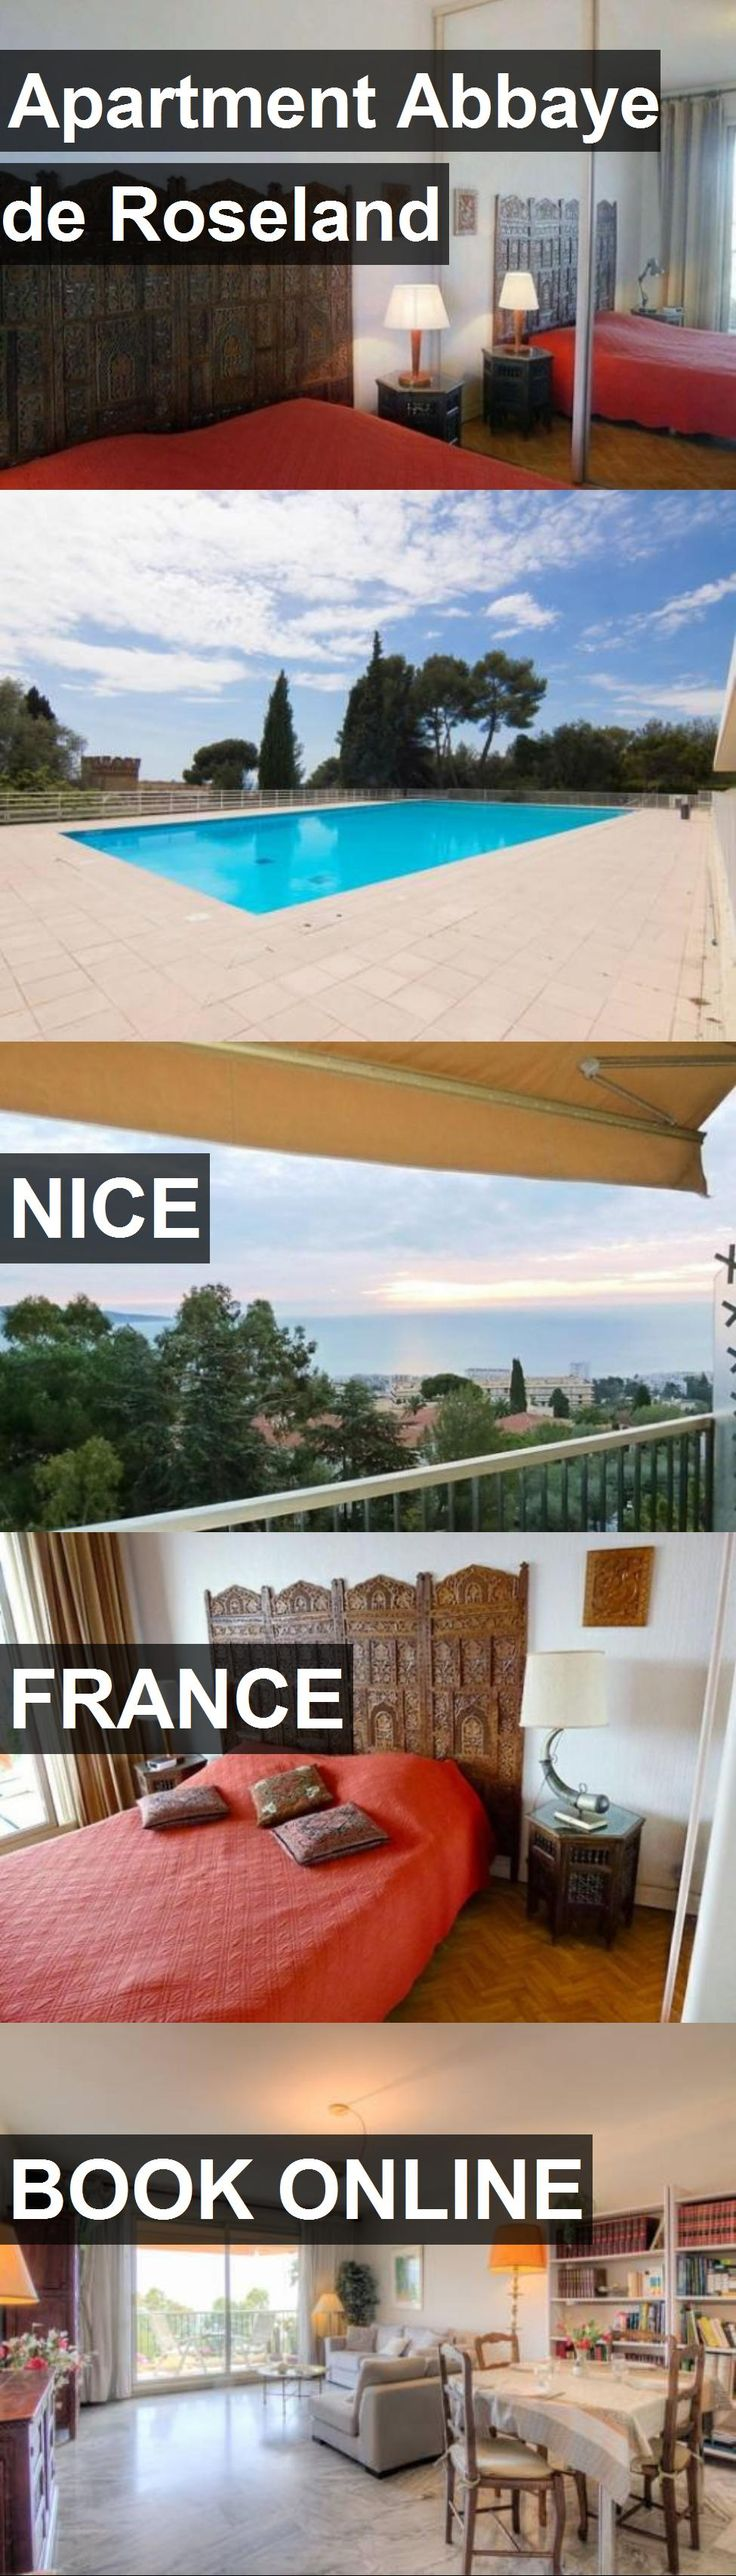 Hotel Apartment Abbaye de Roseland in Nice, France. For more information, photos, reviews and best prices please follow the link. #France #Nice #ApartmentAbbayedeRoseland #hotel #travel #vacation